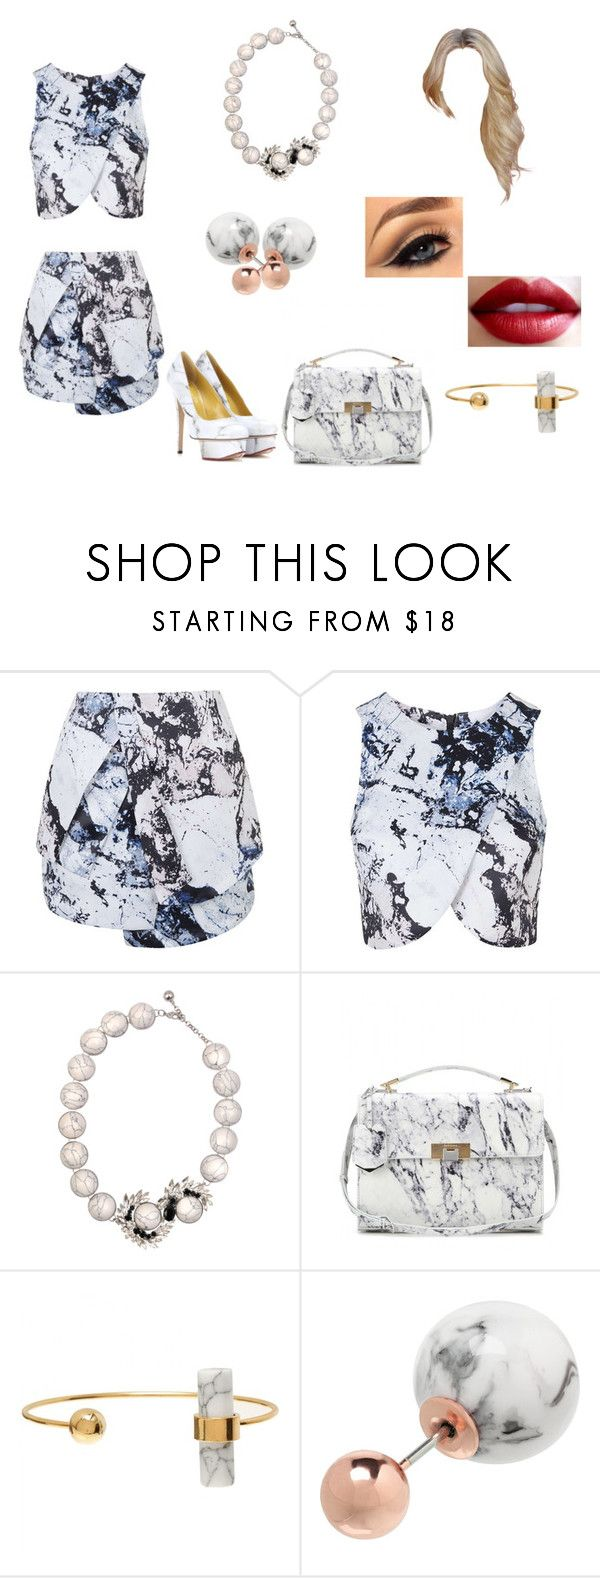 """""""Untitled #177"""" by grosa774 ❤ liked on Polyvore featuring Topshop, SHOUROUK, Balenciaga, David Jones and Charlotte Olympia"""